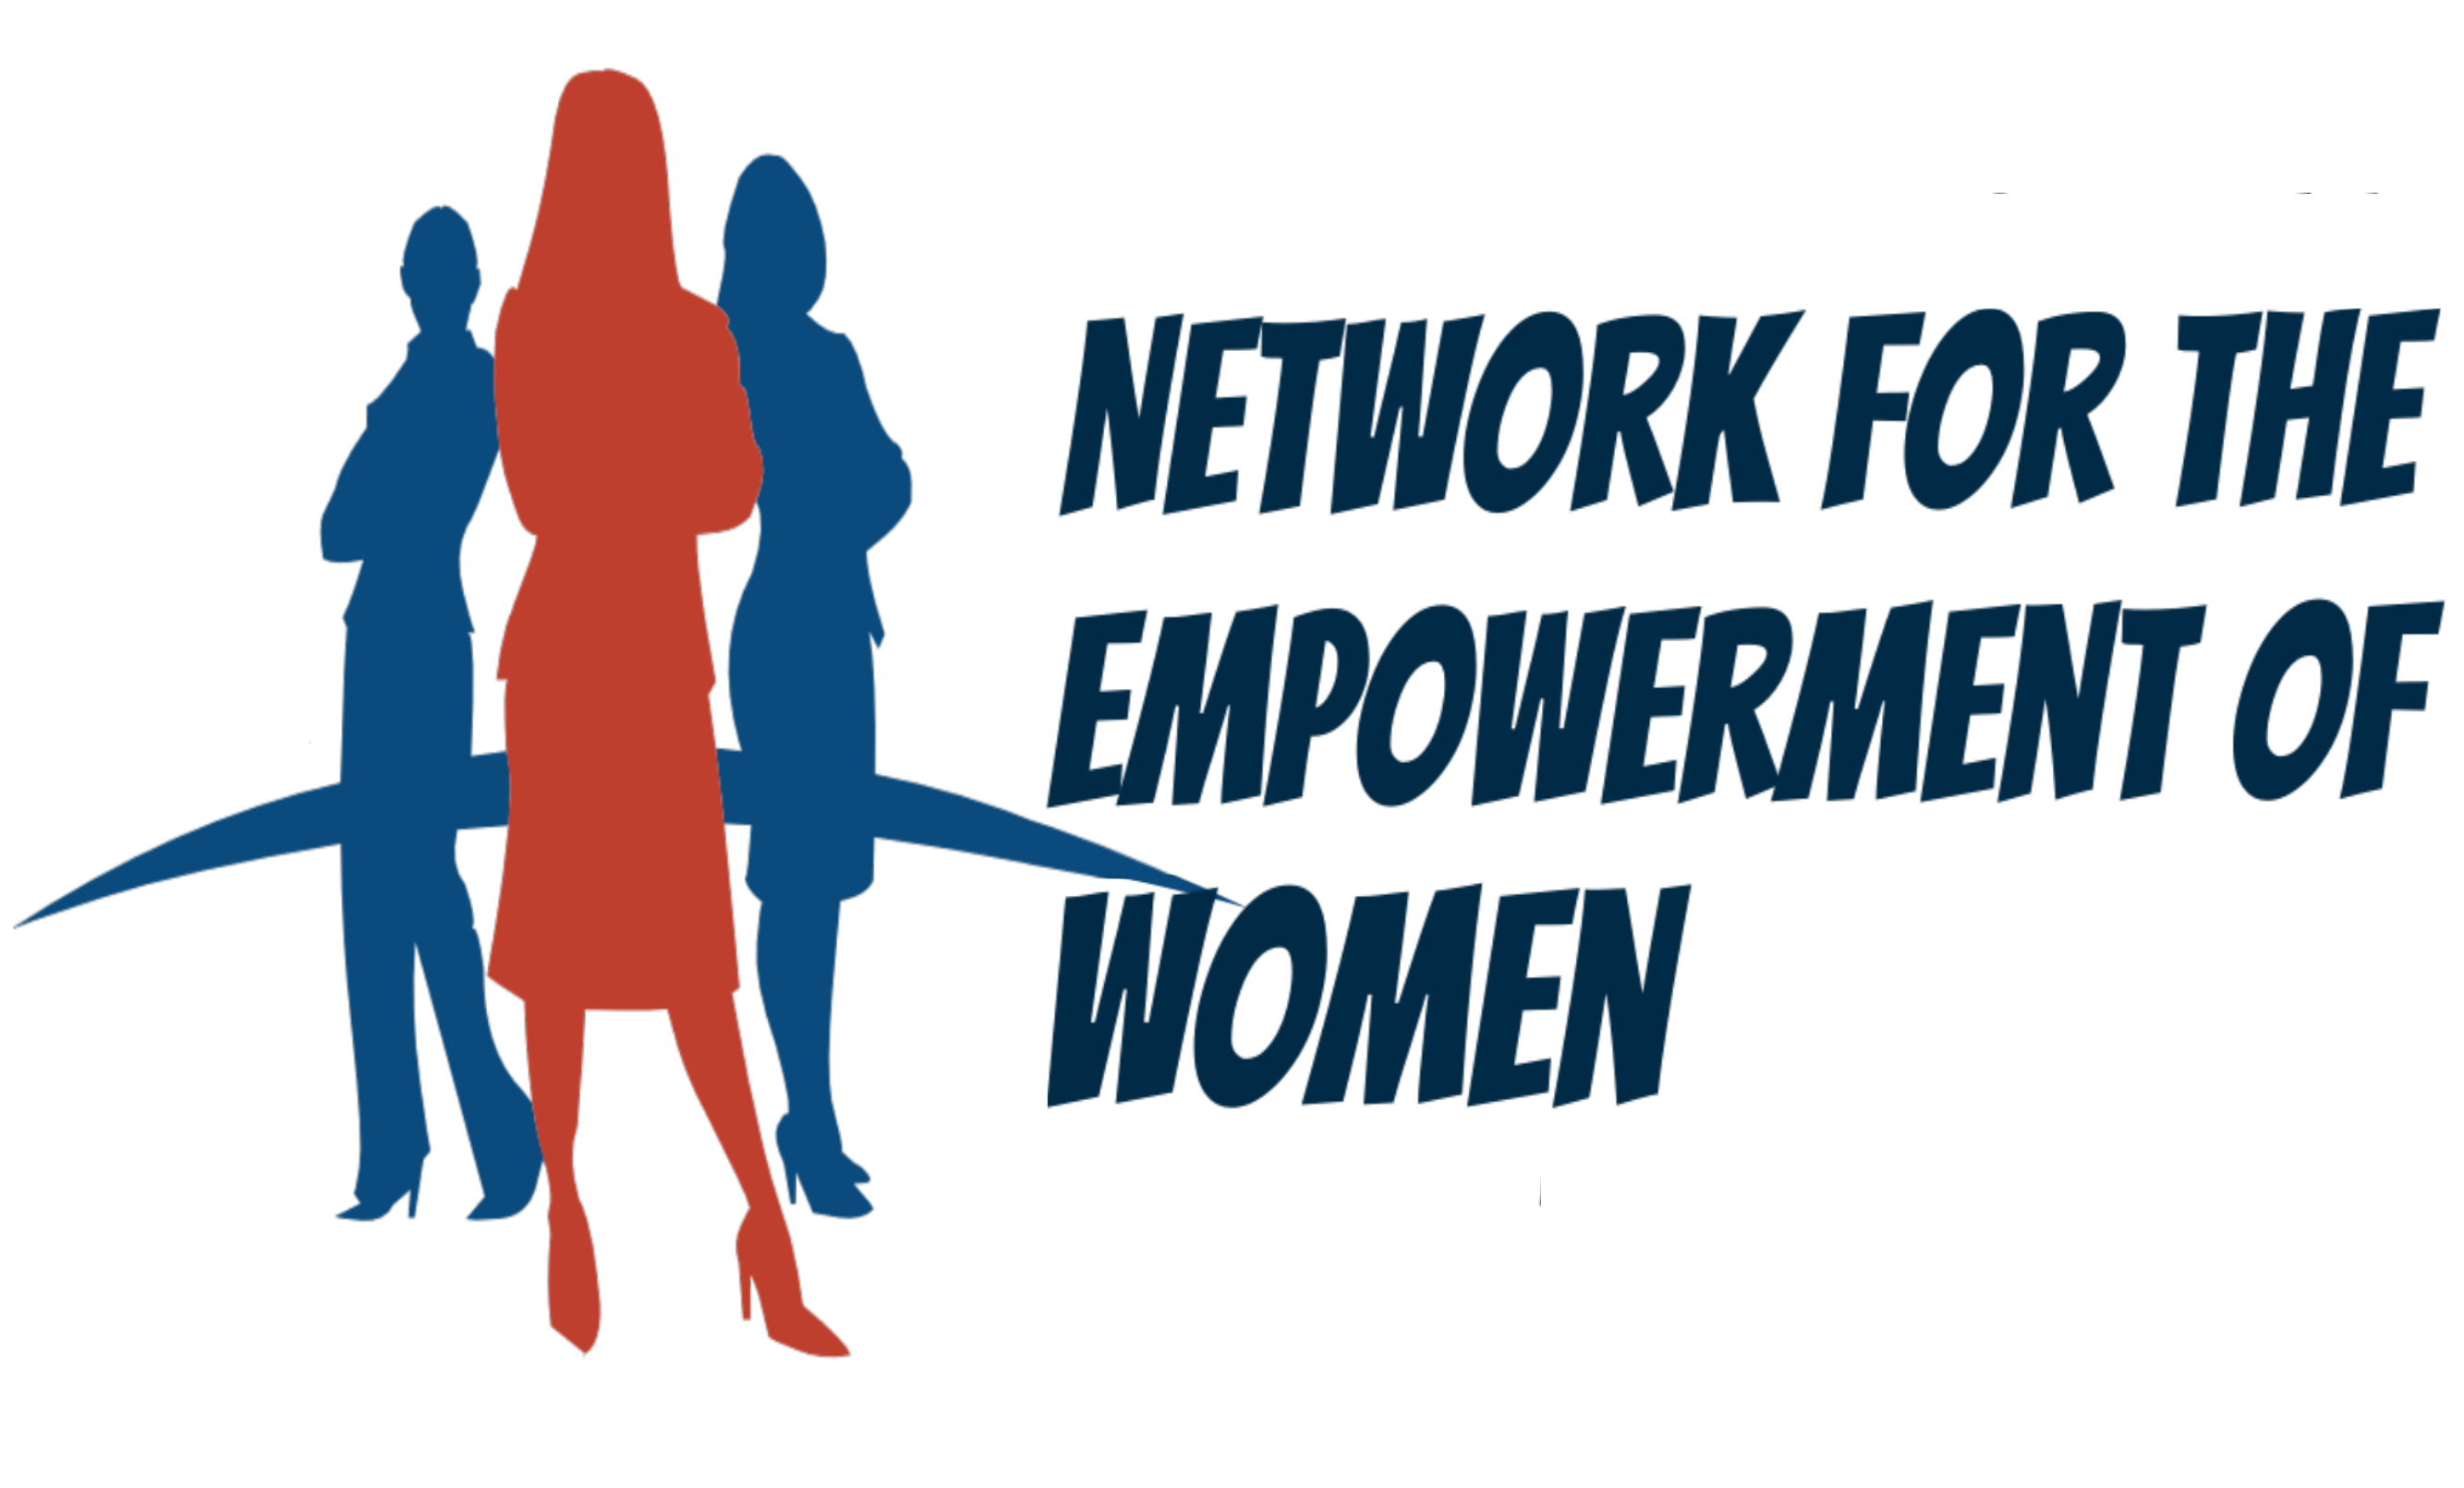 Network for the Empowerment of Women | Halifax